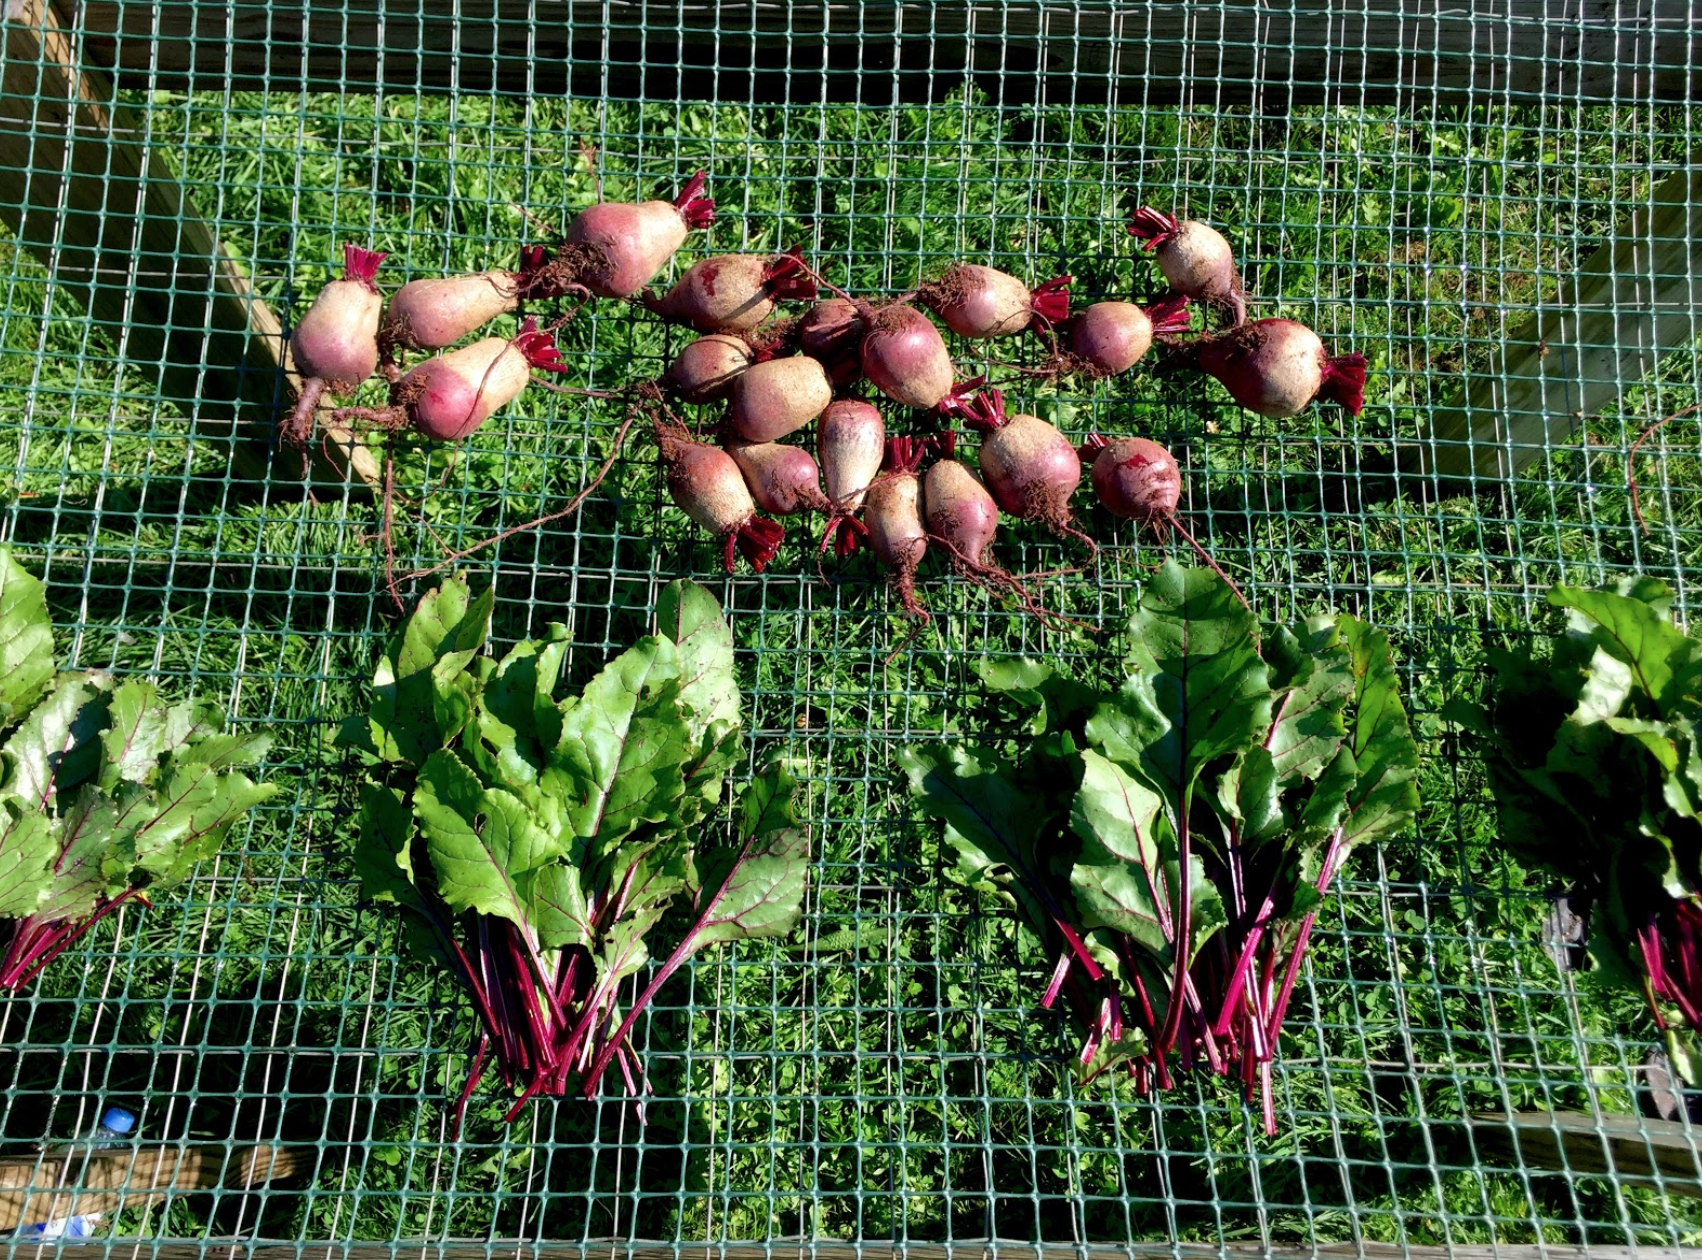 """We harvested beets for our friend Grace, who turns them into delicious """"old fashioned pickled beets"""", and we bunched the greens to sell to the Monadnock Food Coop."""